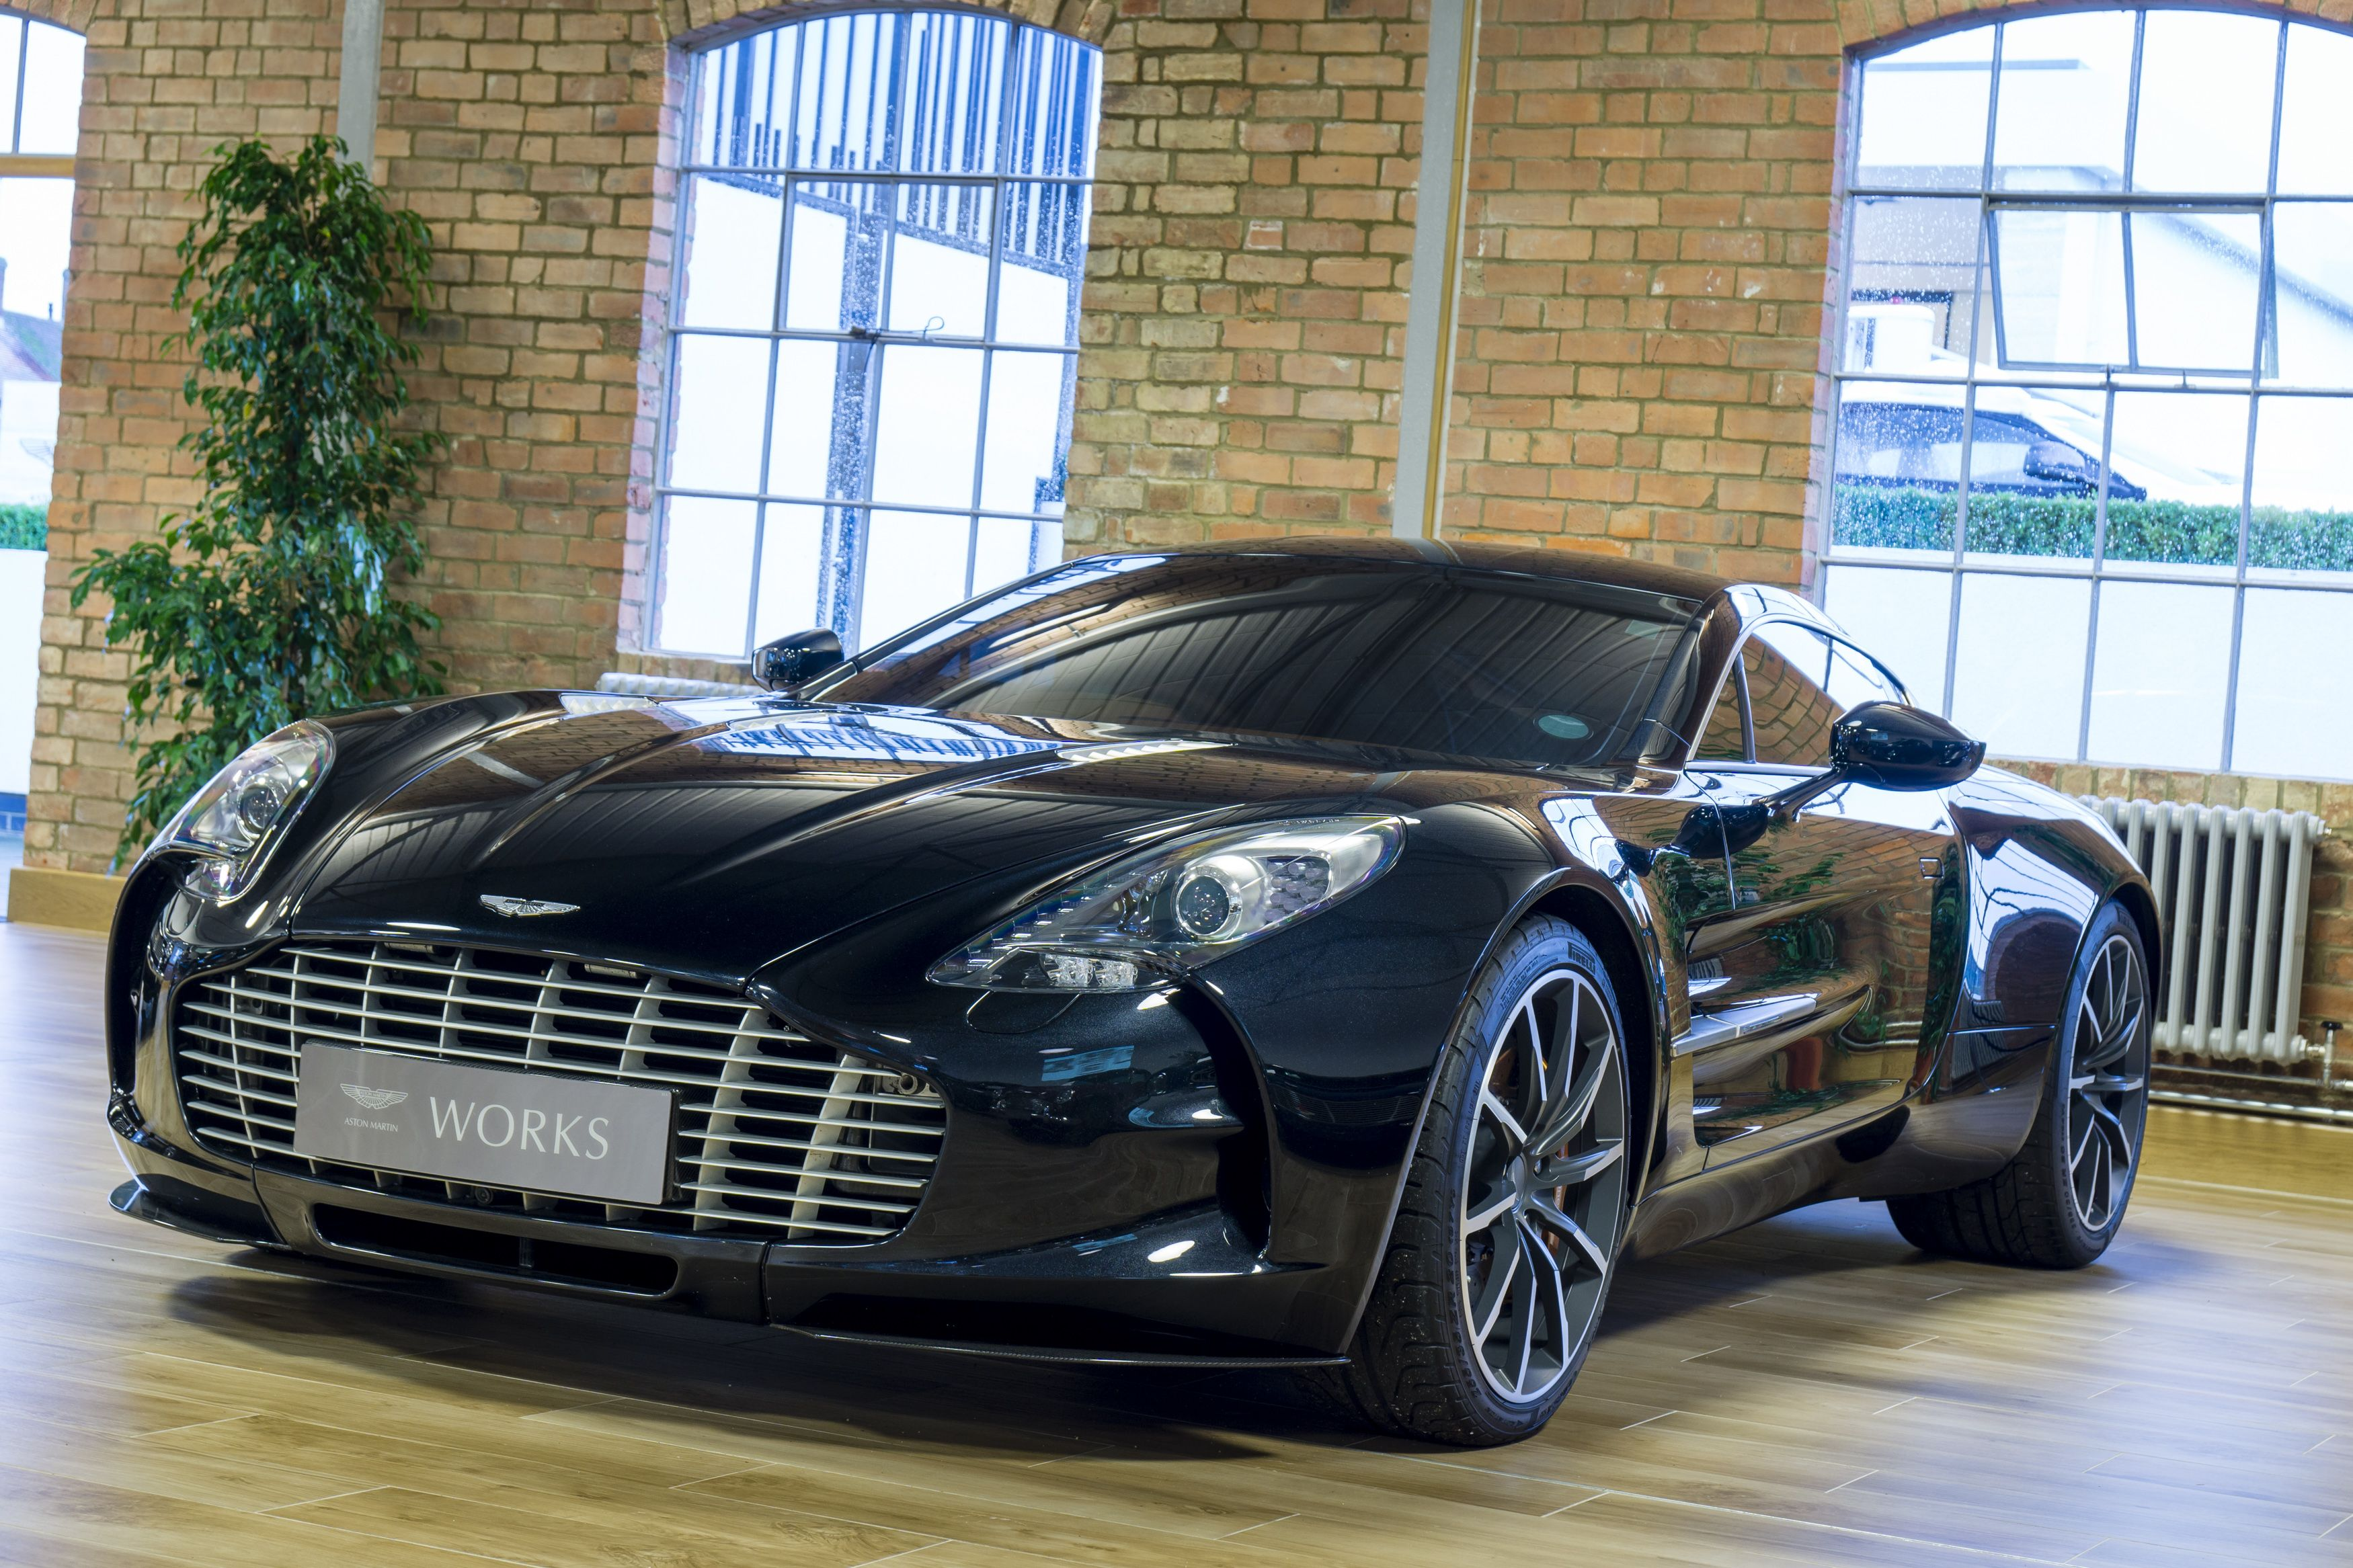 Aston Martin One-77 For Sale >> Aston Martin One 77 Stuff To Buy Gt Cars Aston Martin